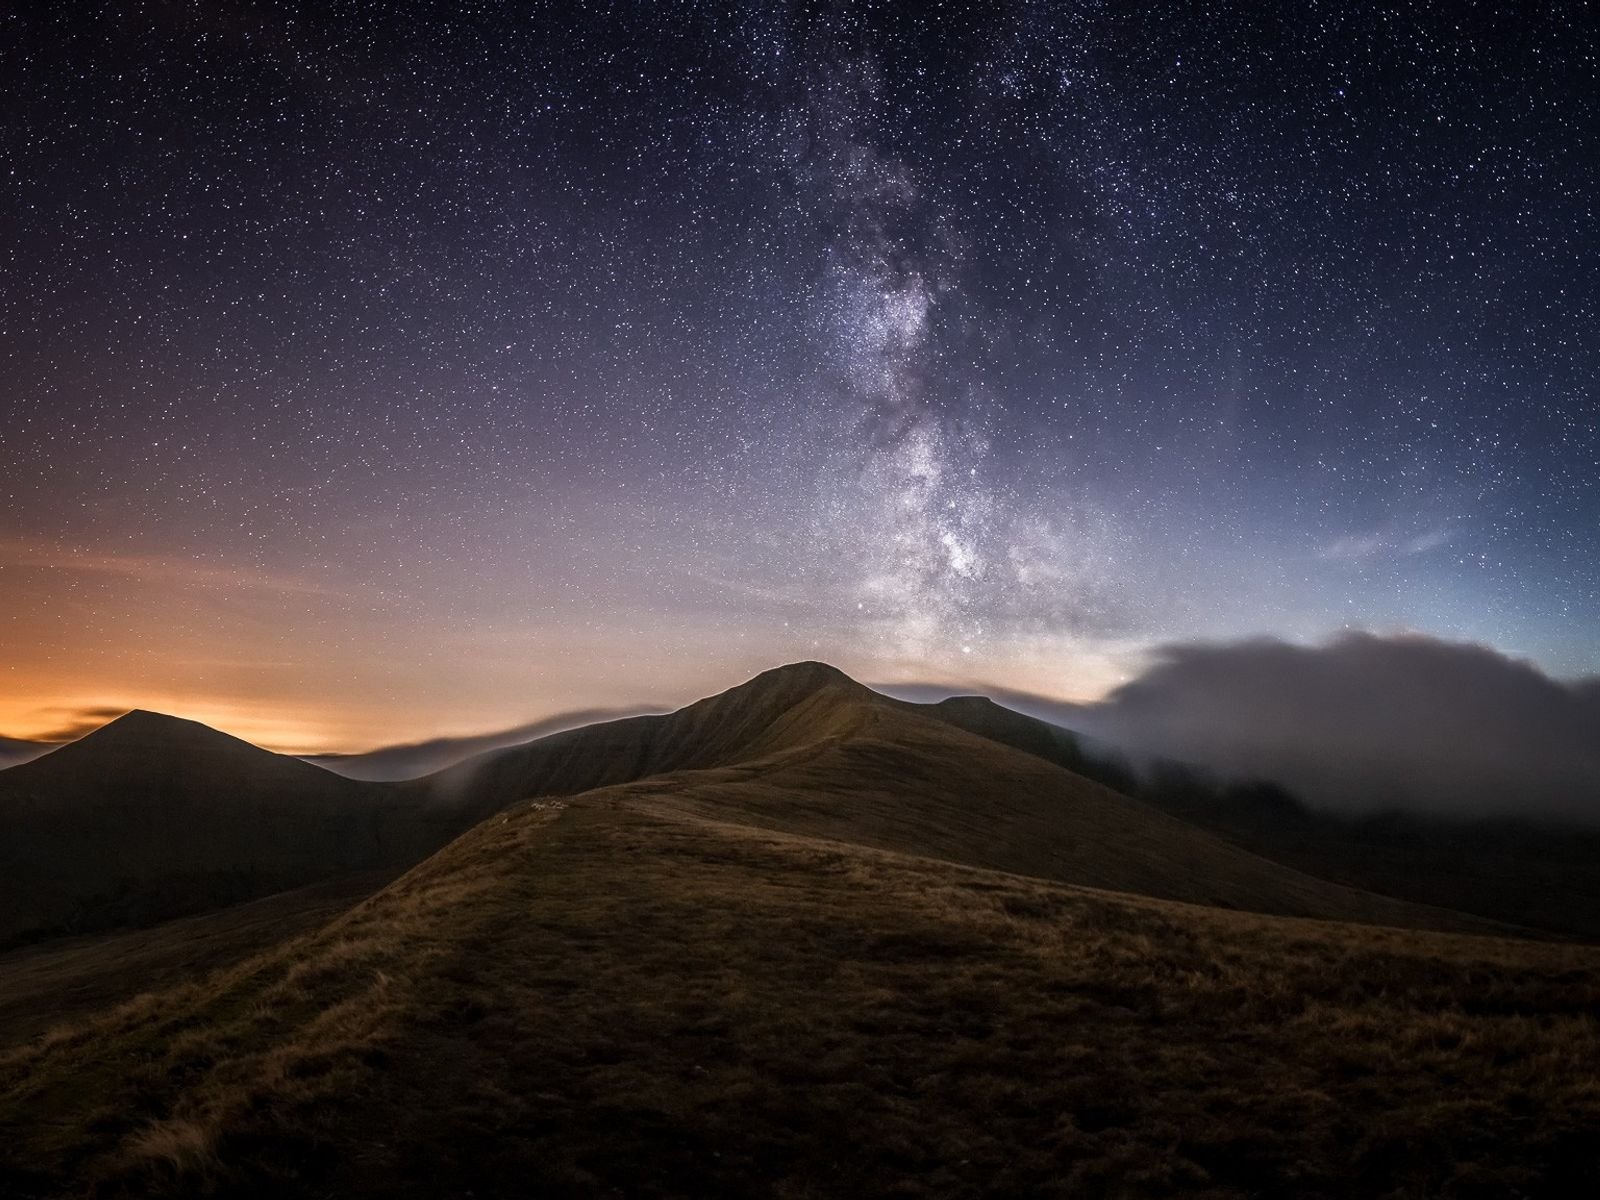 """Alyn Wallace: """"The Milky Way above the central Brecon Beacons with Pen-y-Fan (886m), the highest peak ..."""